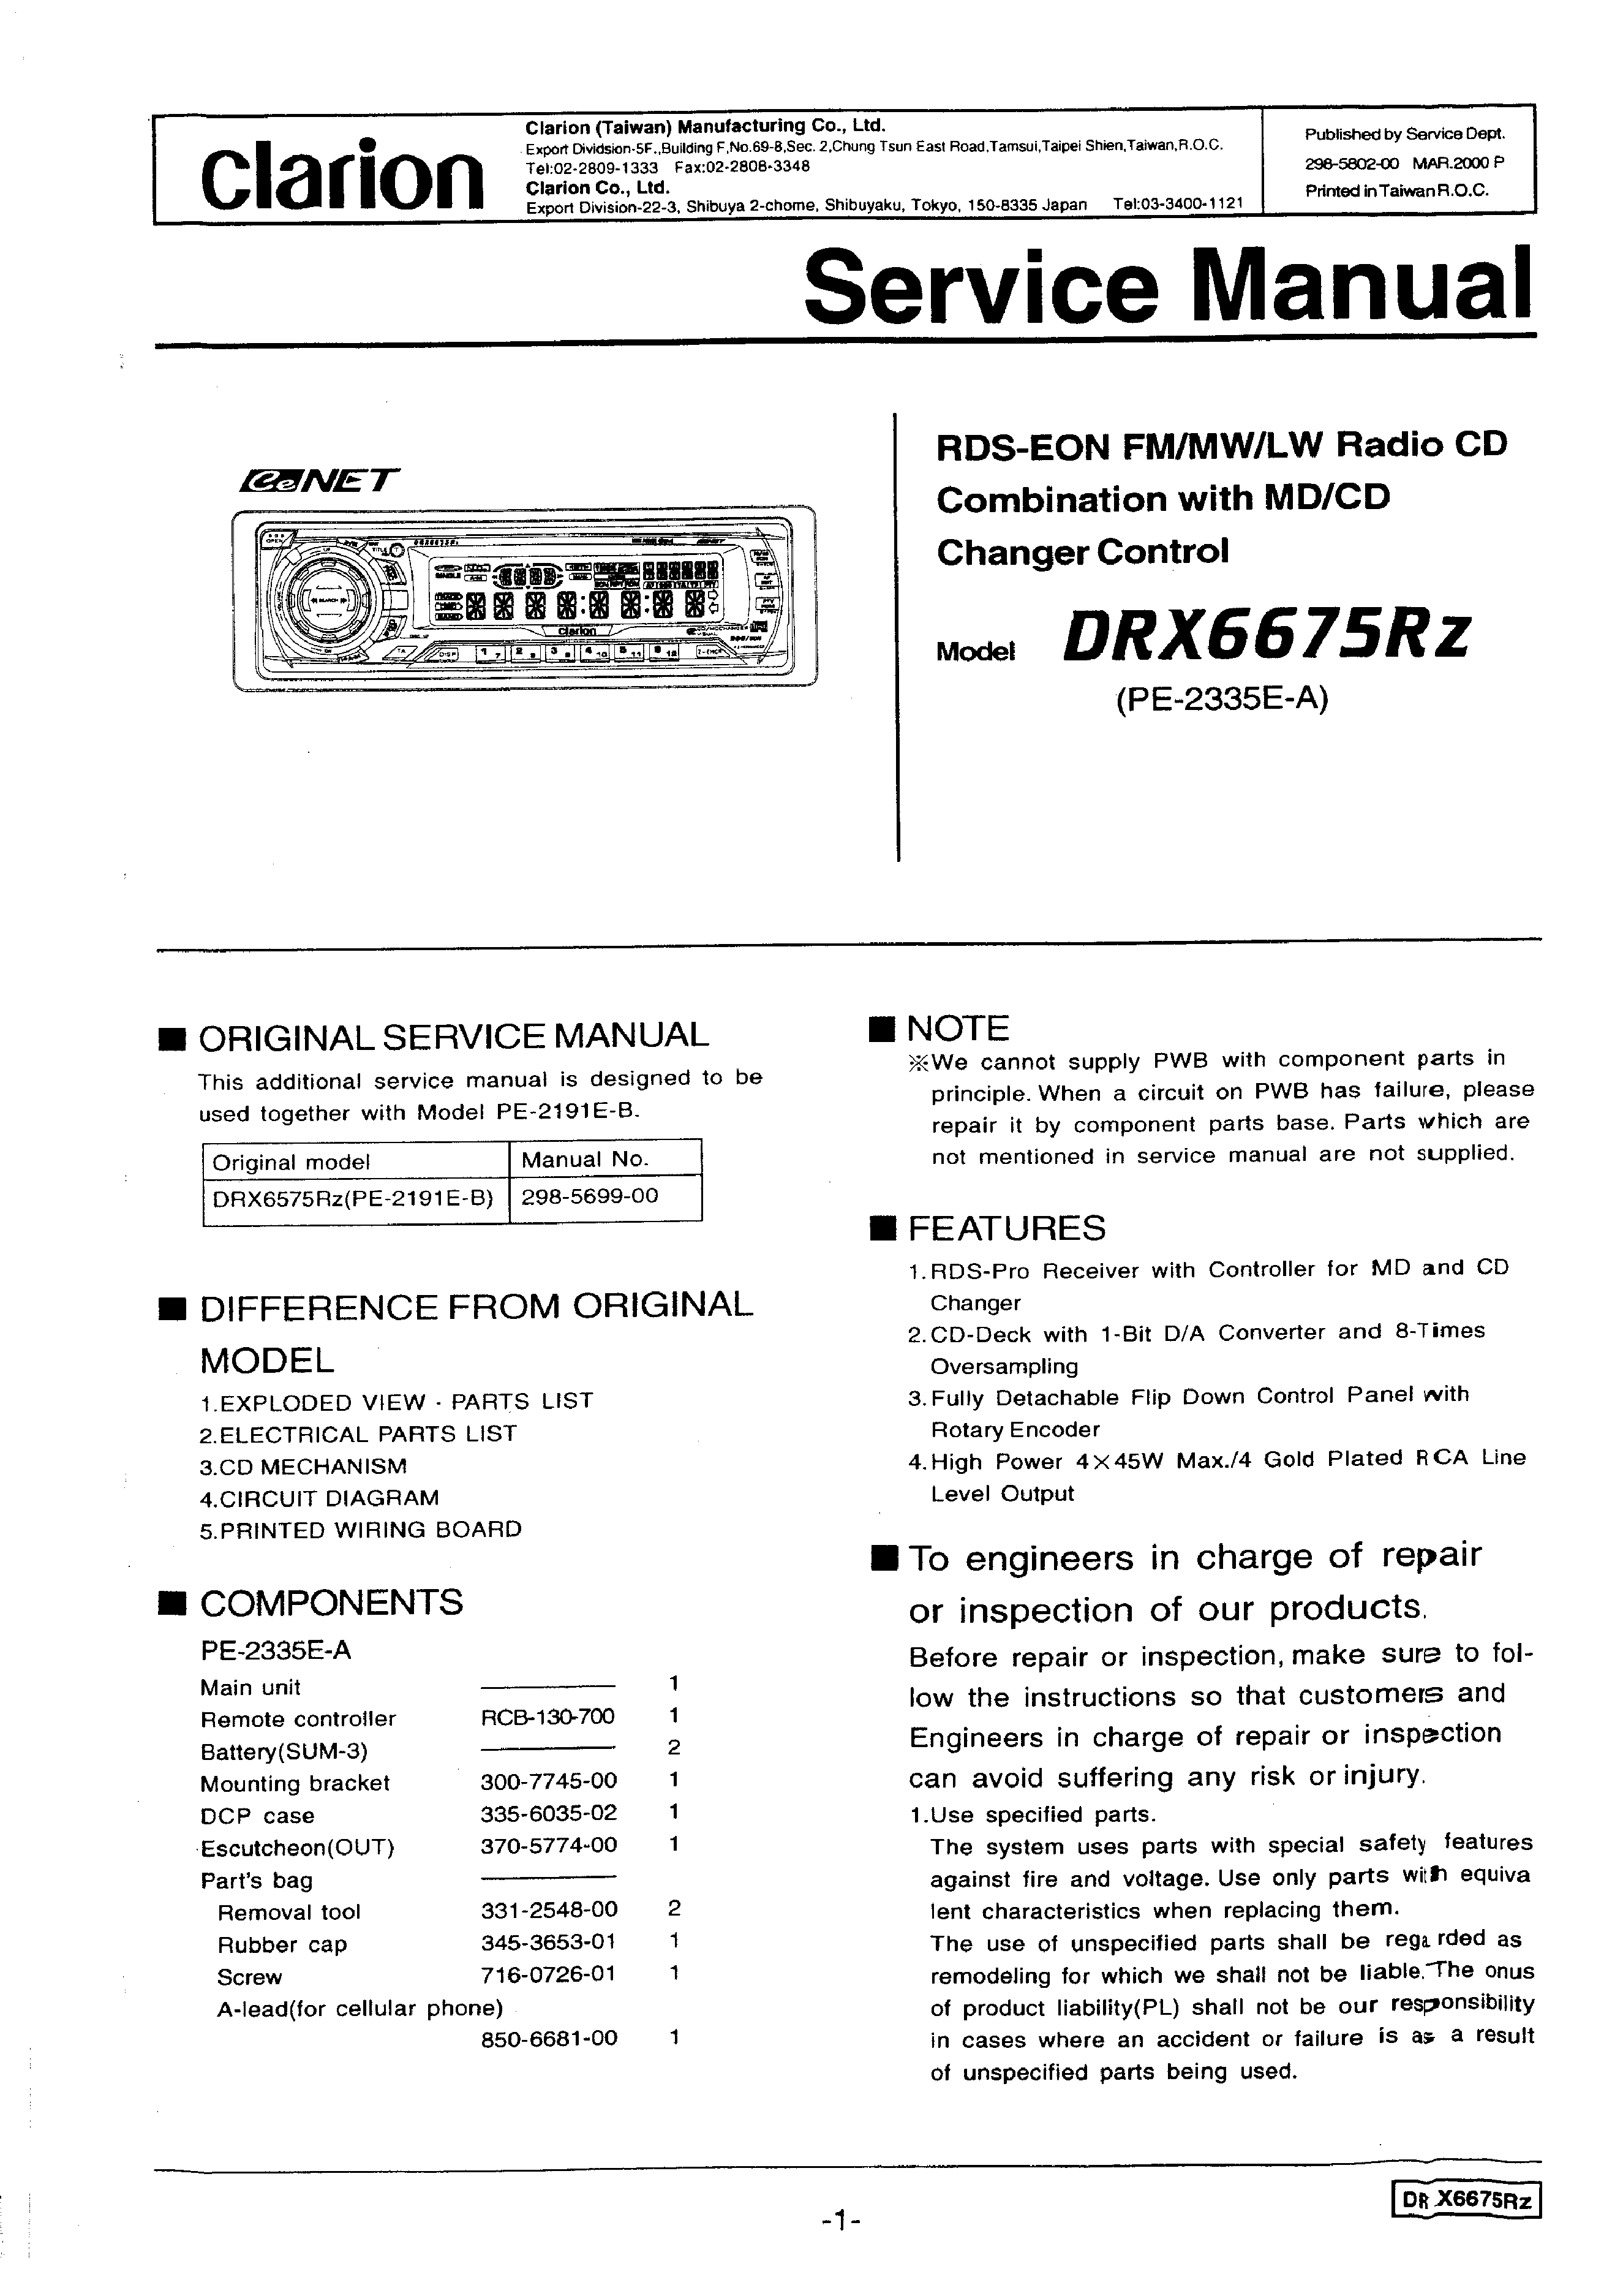 CLARION DRX6675RZ - Service Manual Immediate Download